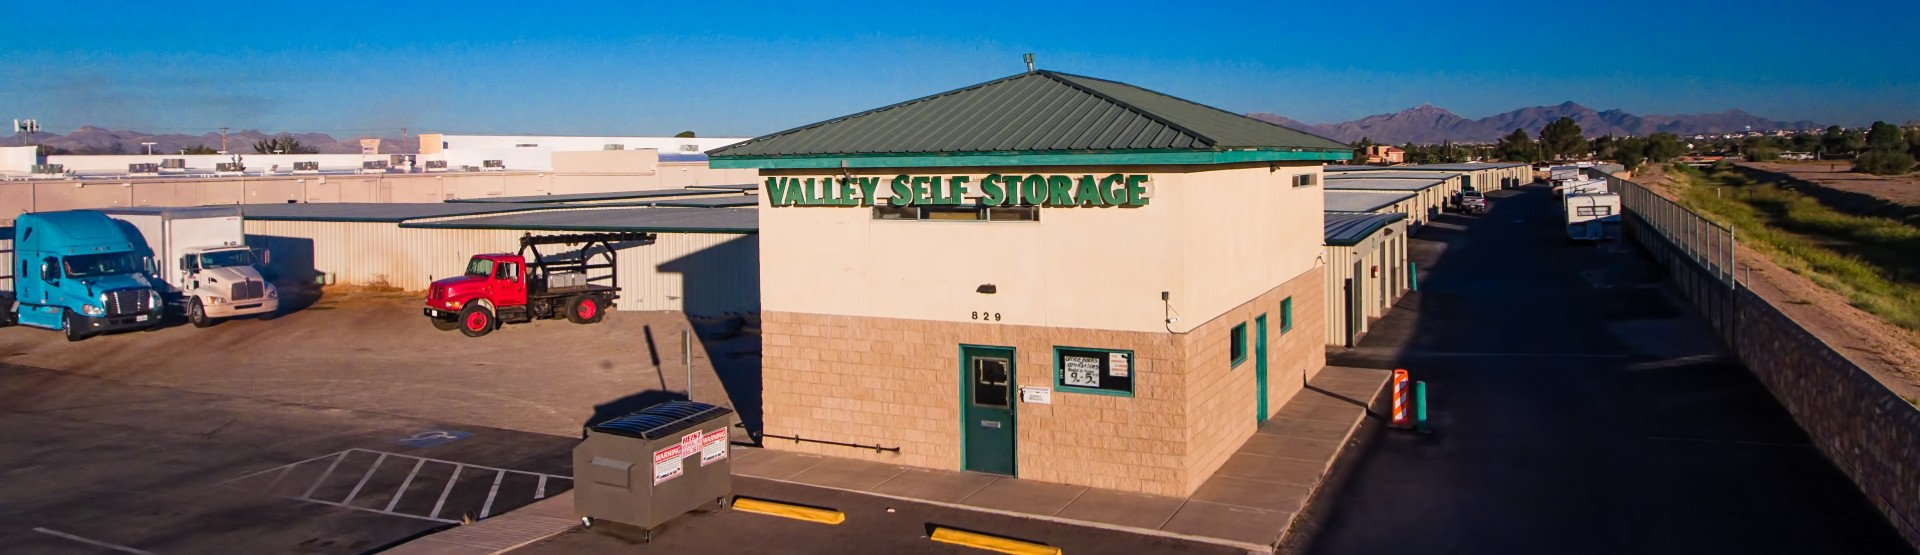 Overhead view of the Valley Self Storage facility